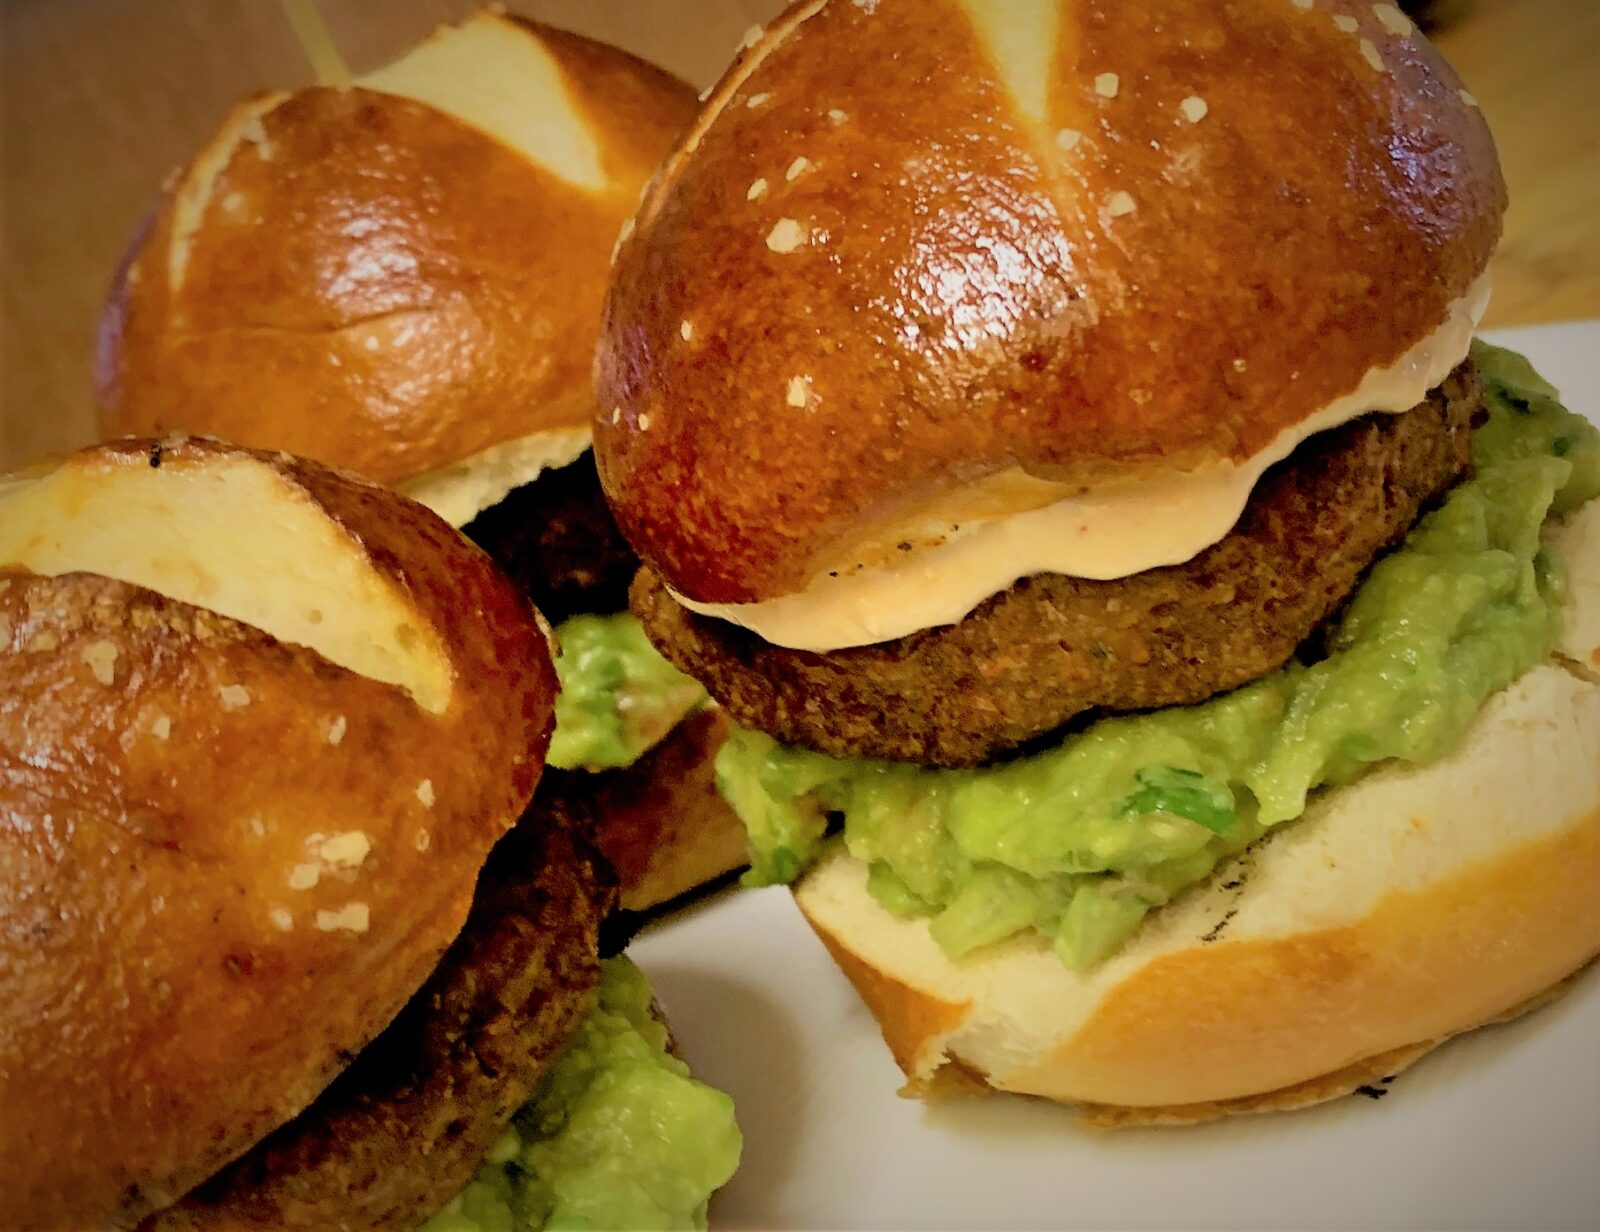 Our assembled Petite Plant-Based Burgers with Guacamole